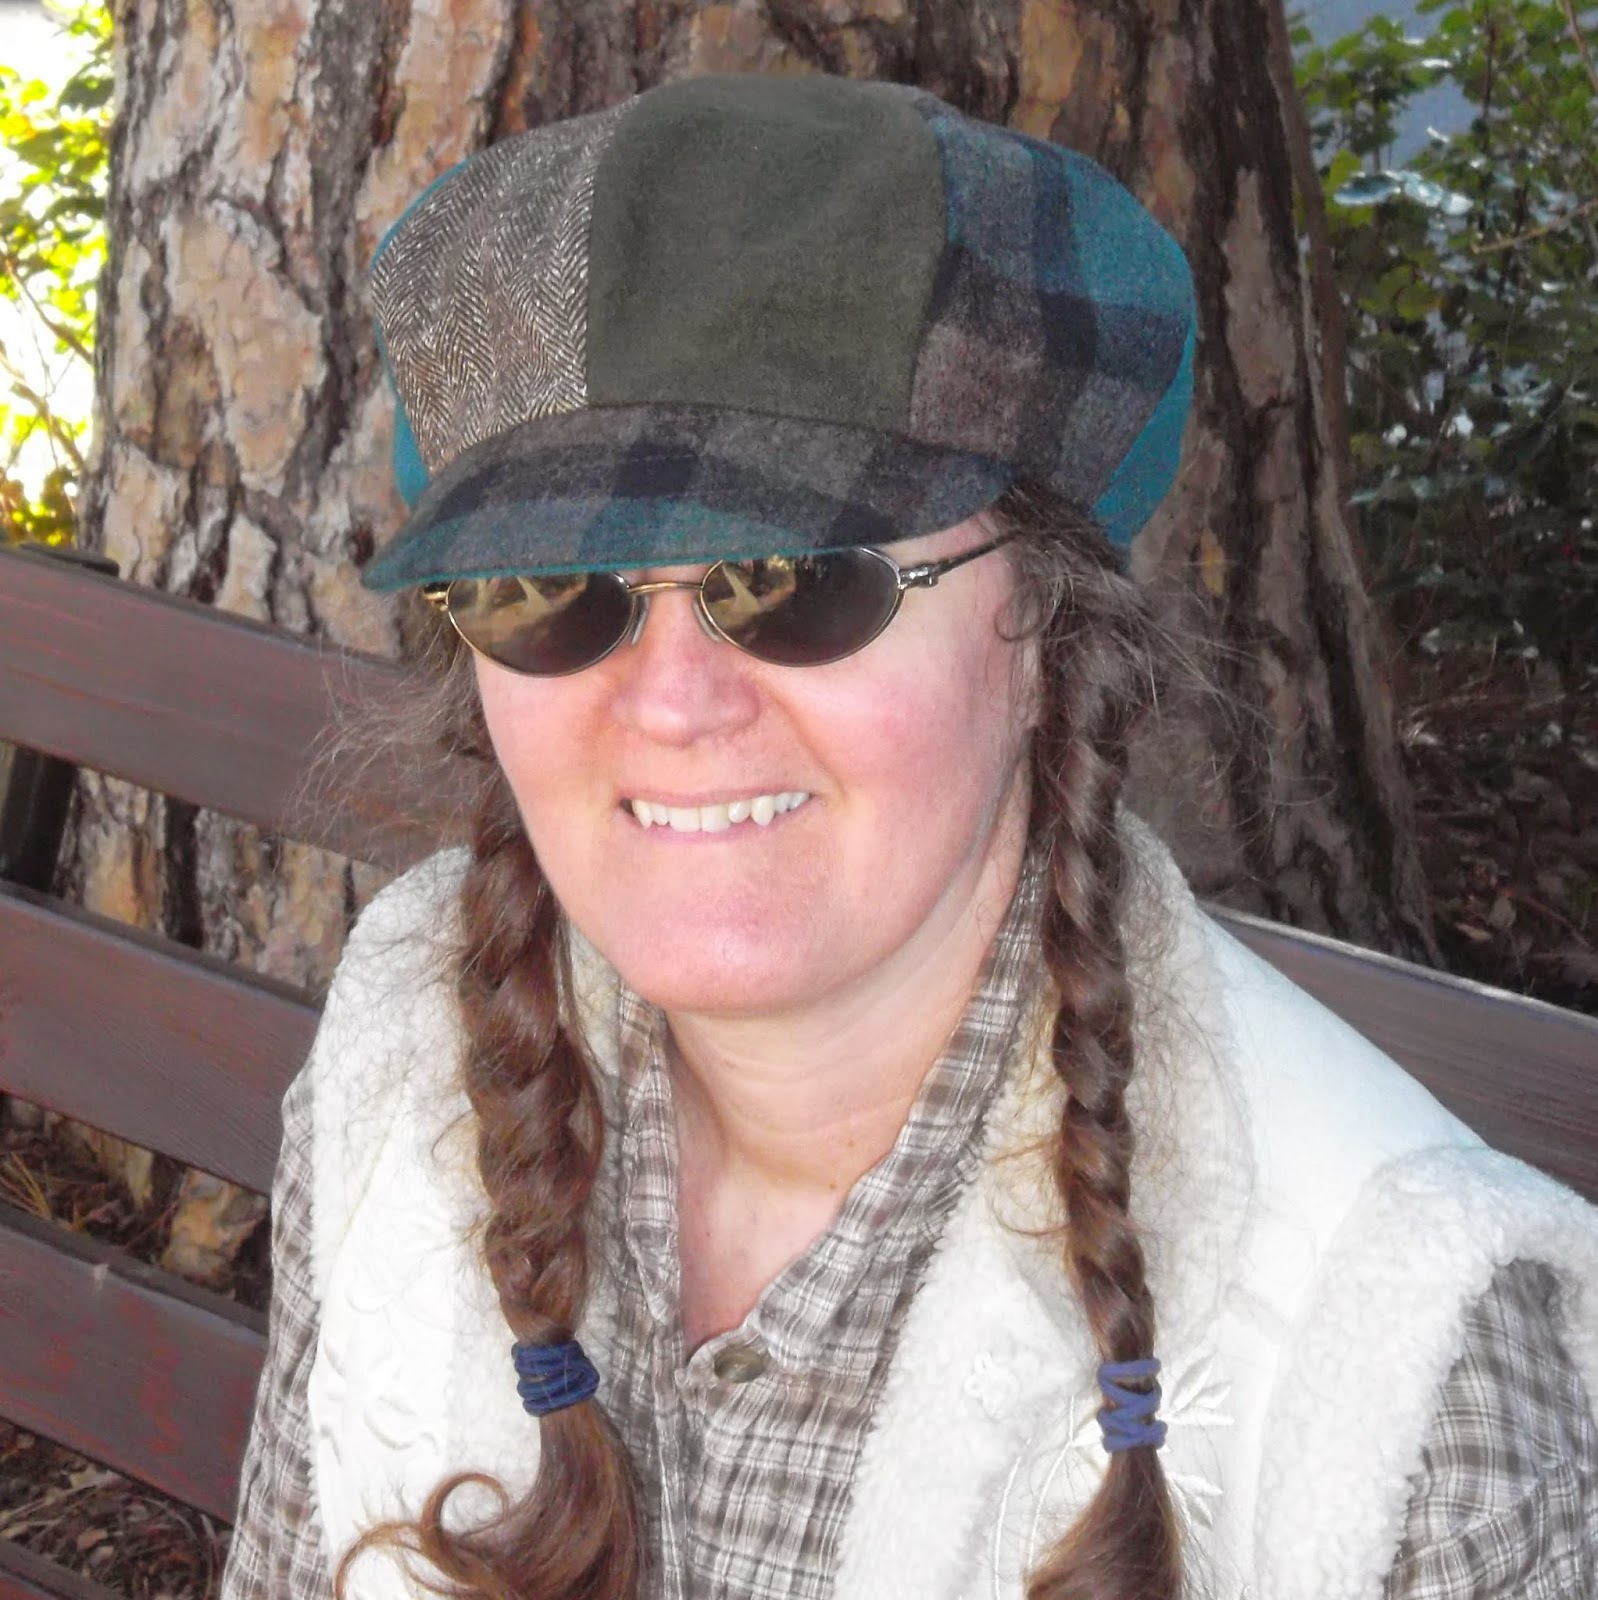 Cynthia M. Parkhill wearing eight-paneled newsboy style brimmed hat. From left to right, in order, panels are fully or partially visible in teal, brown houndstooth, dark green, brown plaid and teal. The brown houndstooth and dark-green panels occupy center front of the hat, above a bill of brown-and-green plaid. A thin outline of the bill's teal underbill is just visible along the bill's front edge.